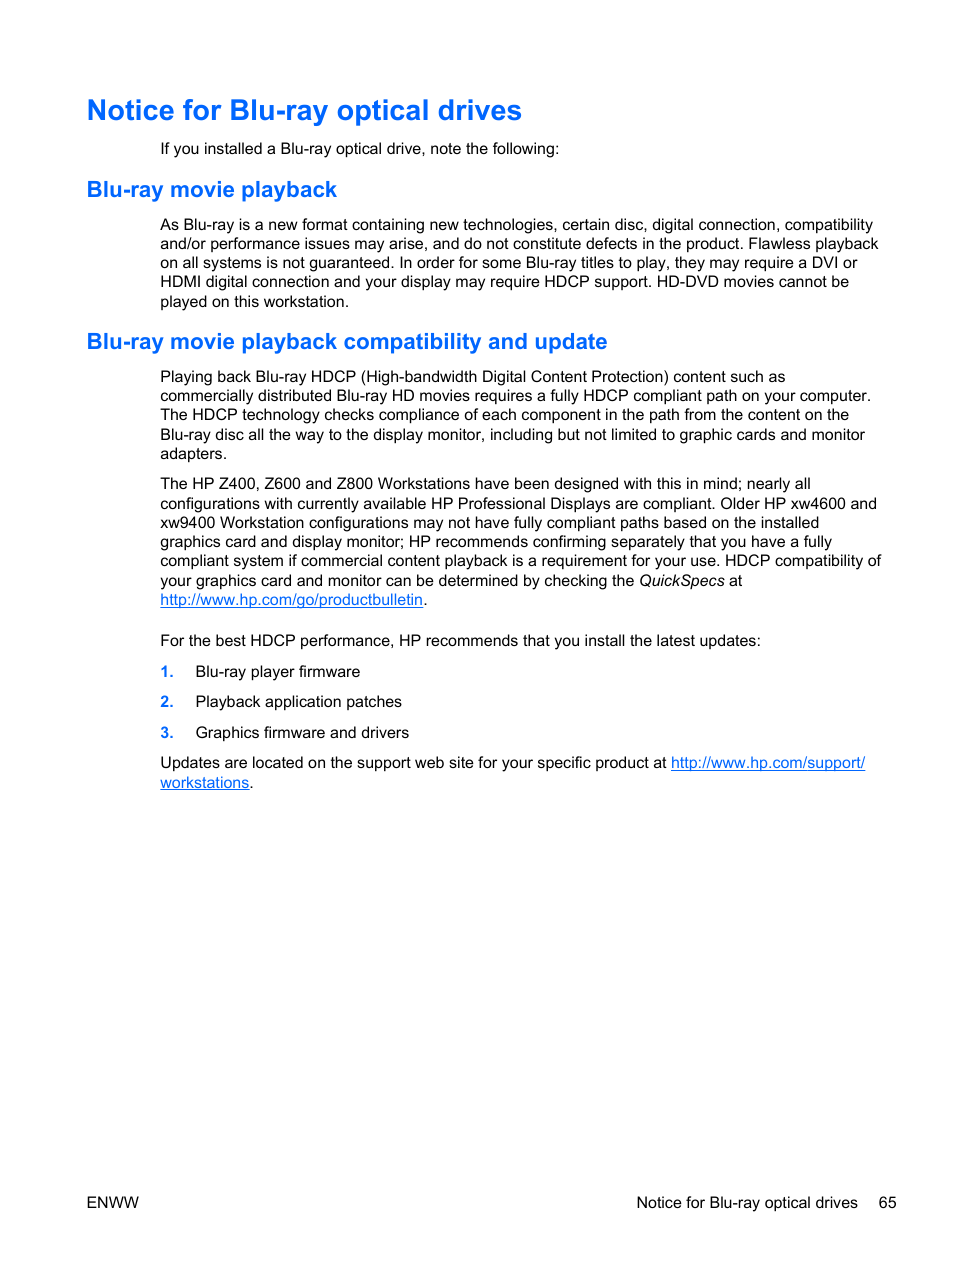 Notice for blu-ray optical drives, Blu-ray movie playback, Blu-ray